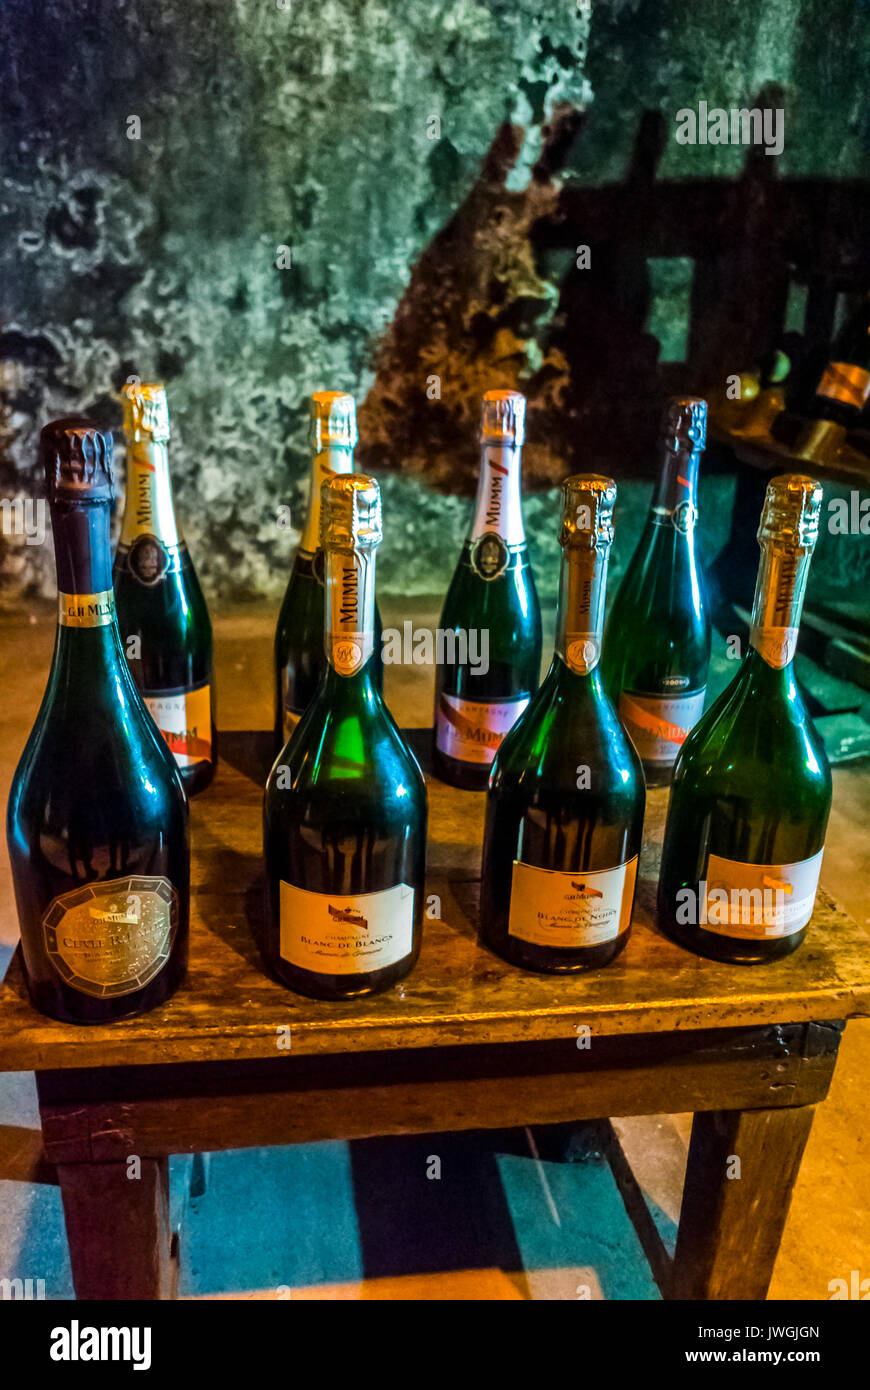 Reims, France, Collection of French Wines on Display in Mumm Champagne Cave - Stock Image